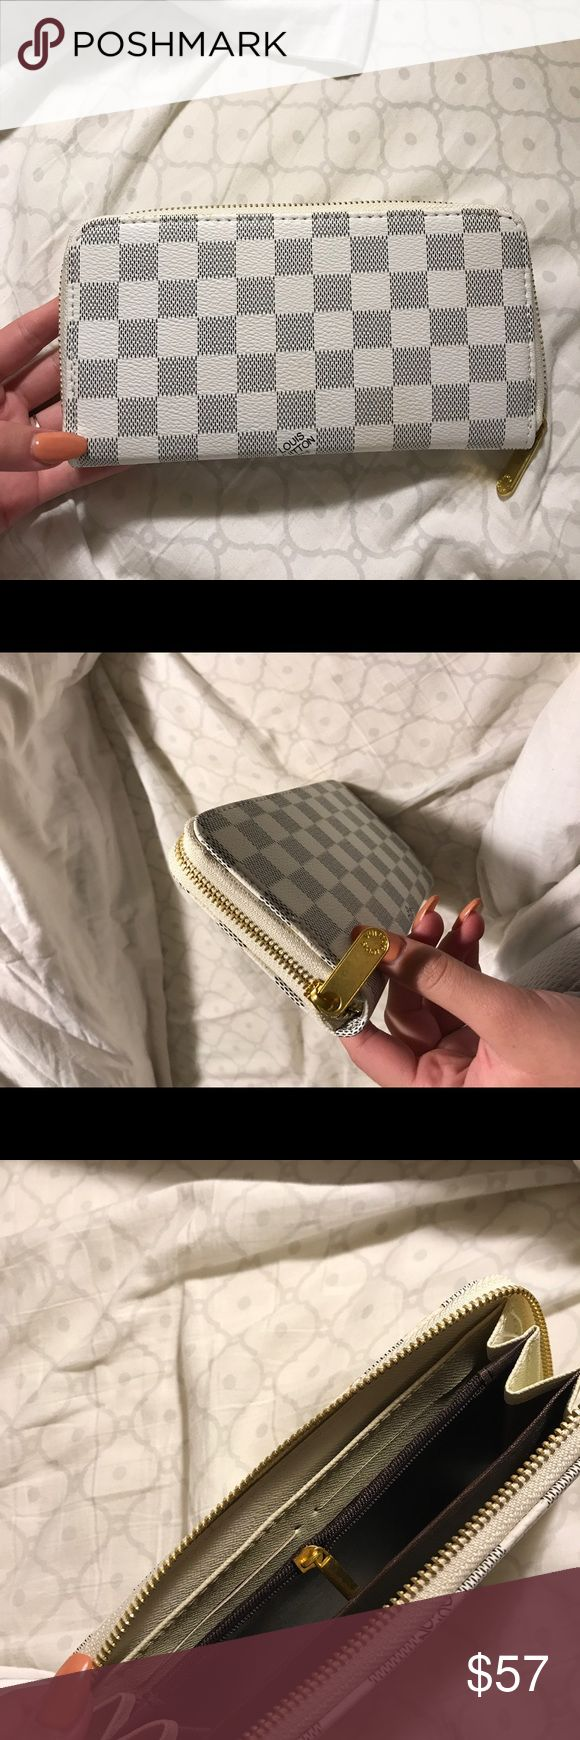 Louis Vuitton wallet Price. Reflects. Great condition. Louis Vuitton Accessories Key & Card Holders